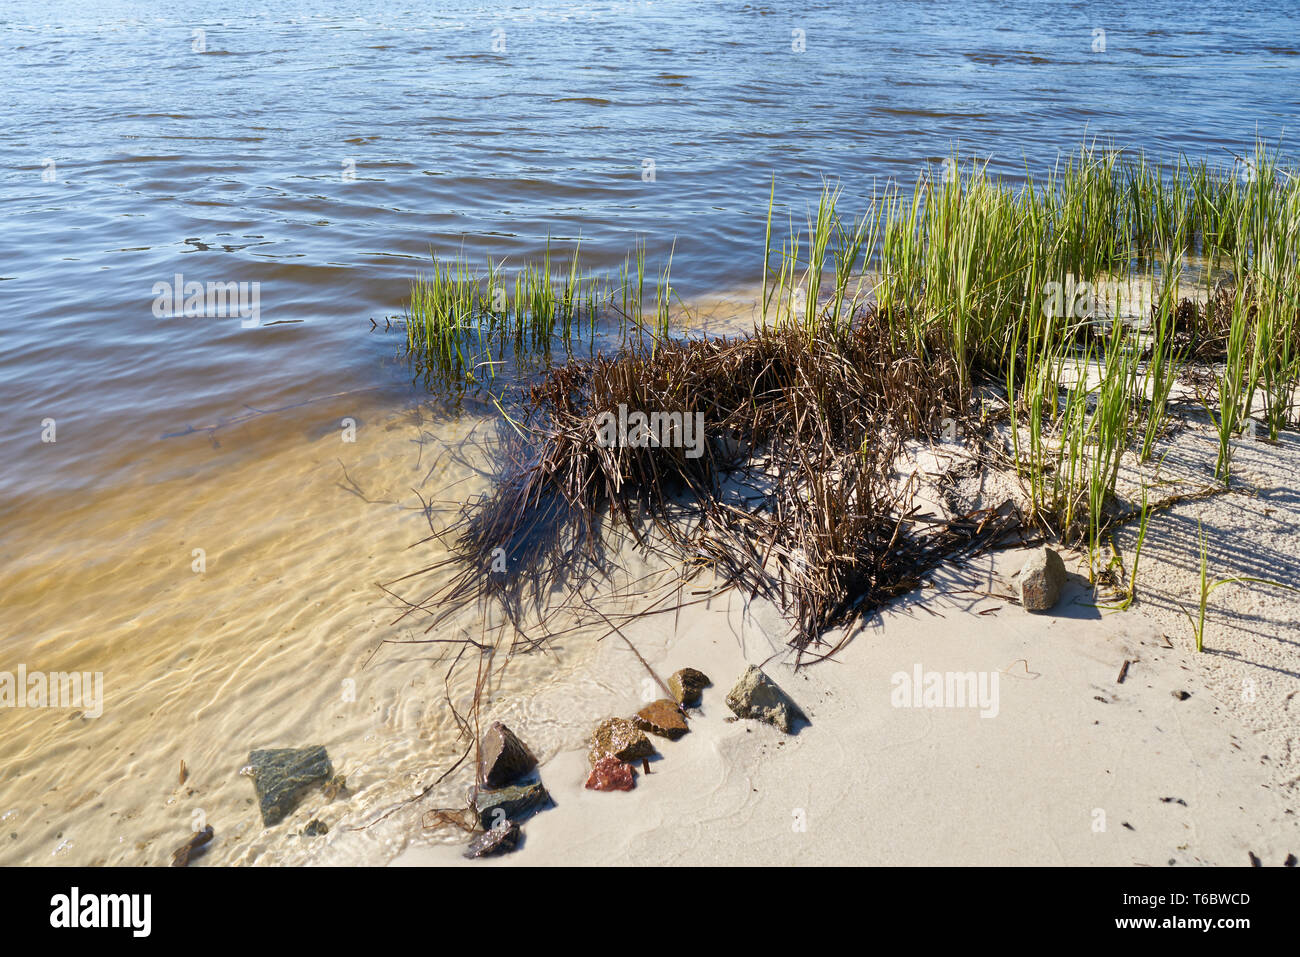 On the banks of the river Elbe near Magdeburg - Stock Image